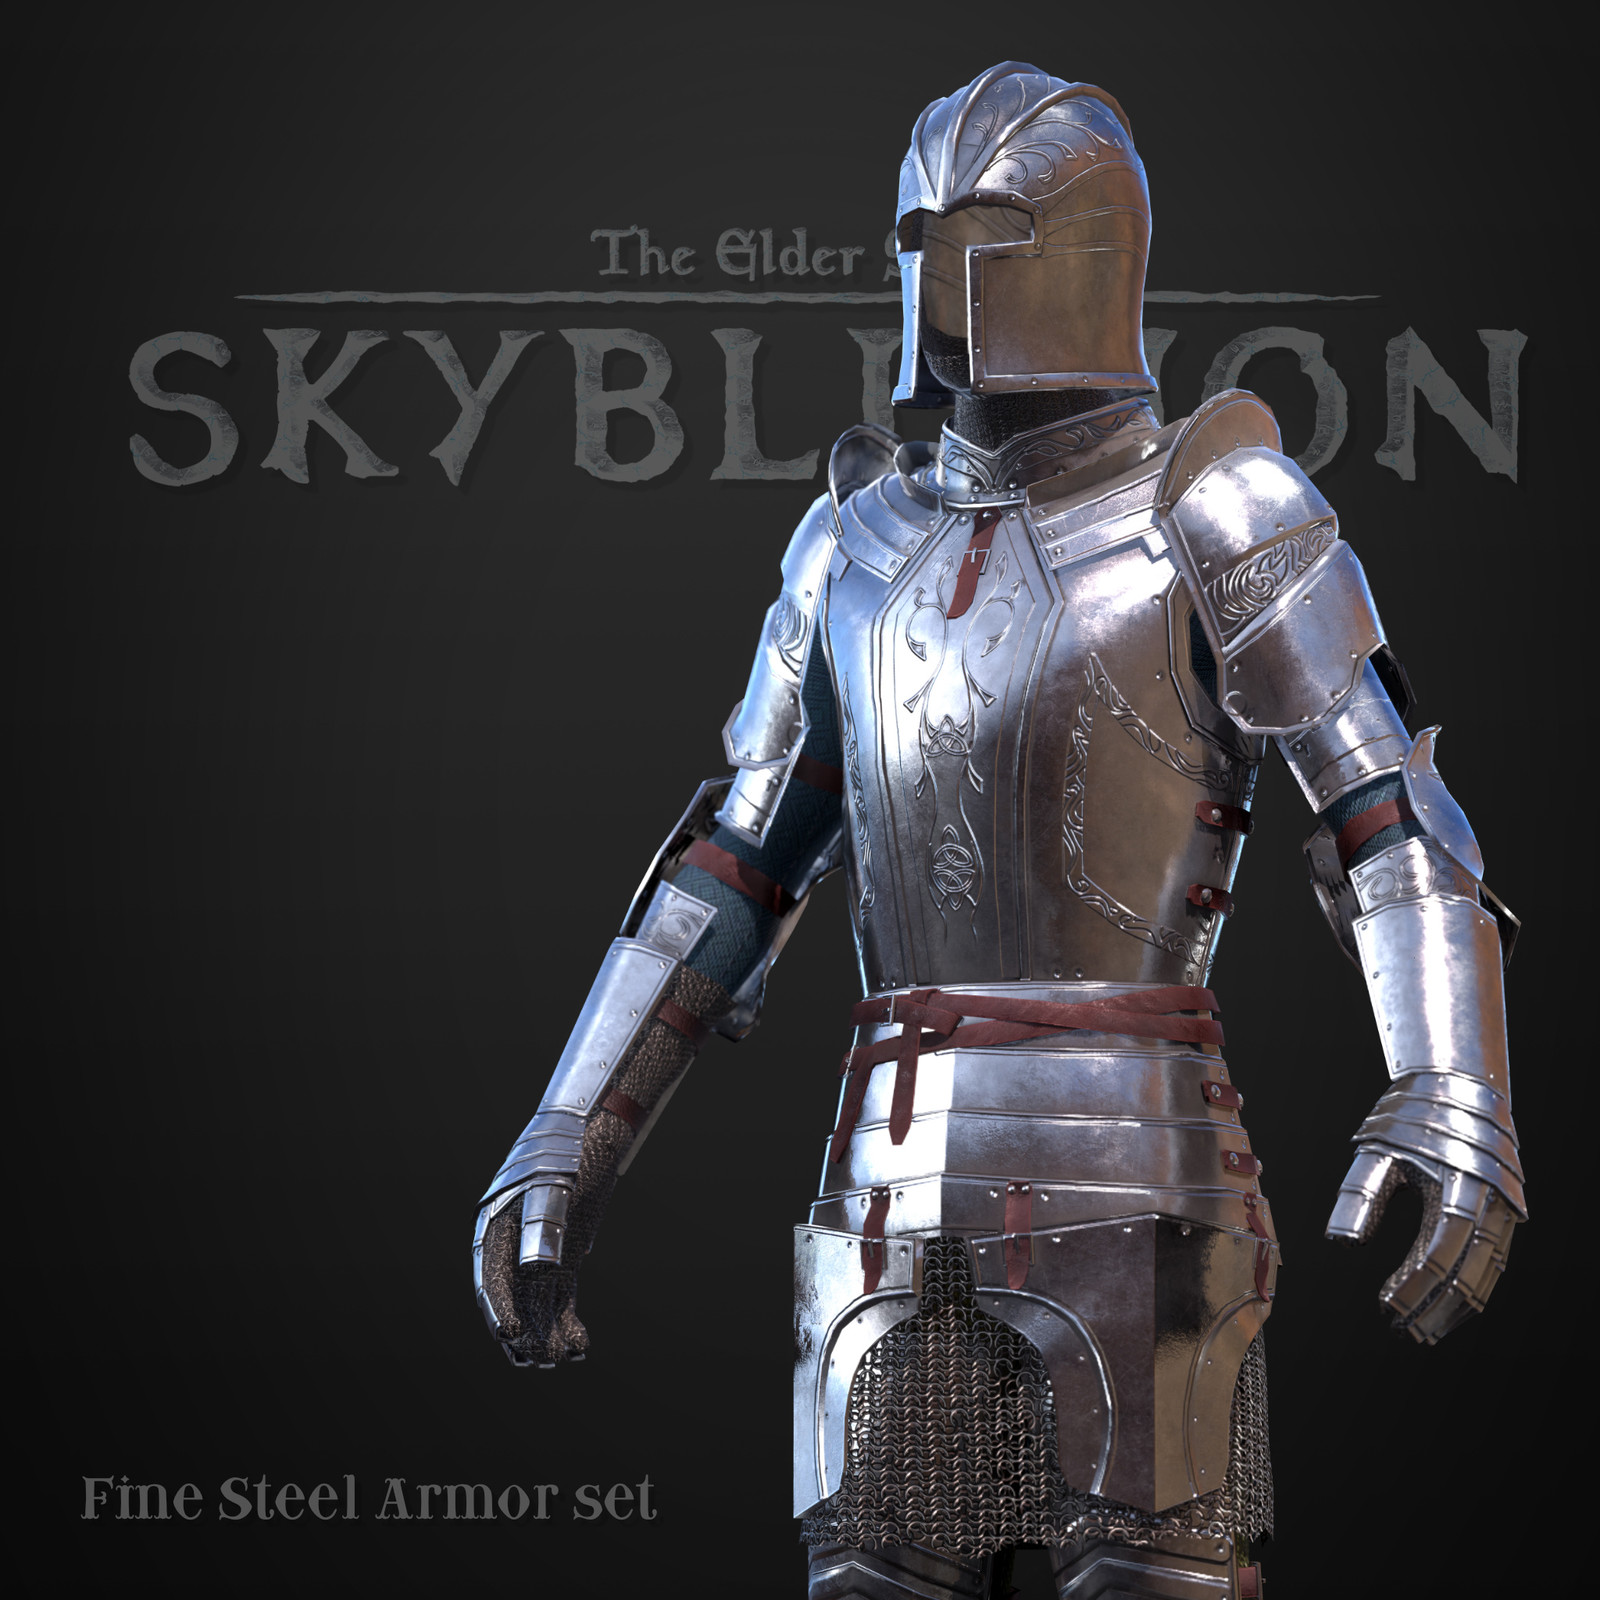 Fine Steel armor set